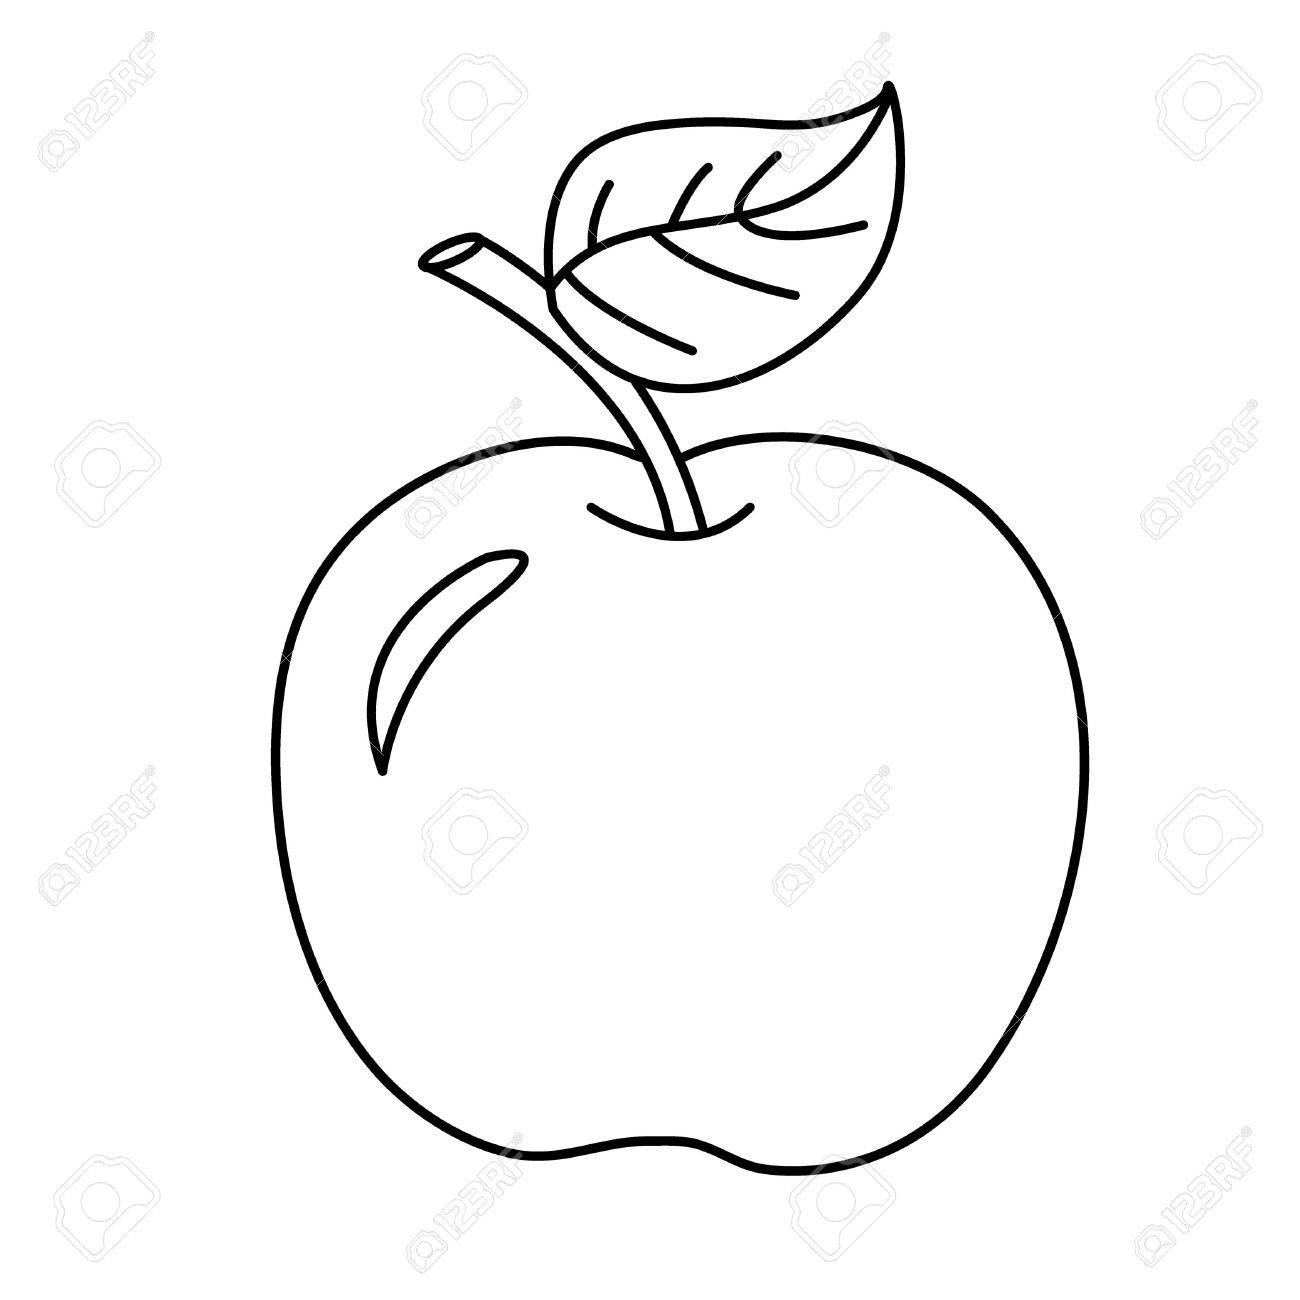 1300x1300 Coloring Page Outline Of Cartoon Apple. Fruits. Coloring Book